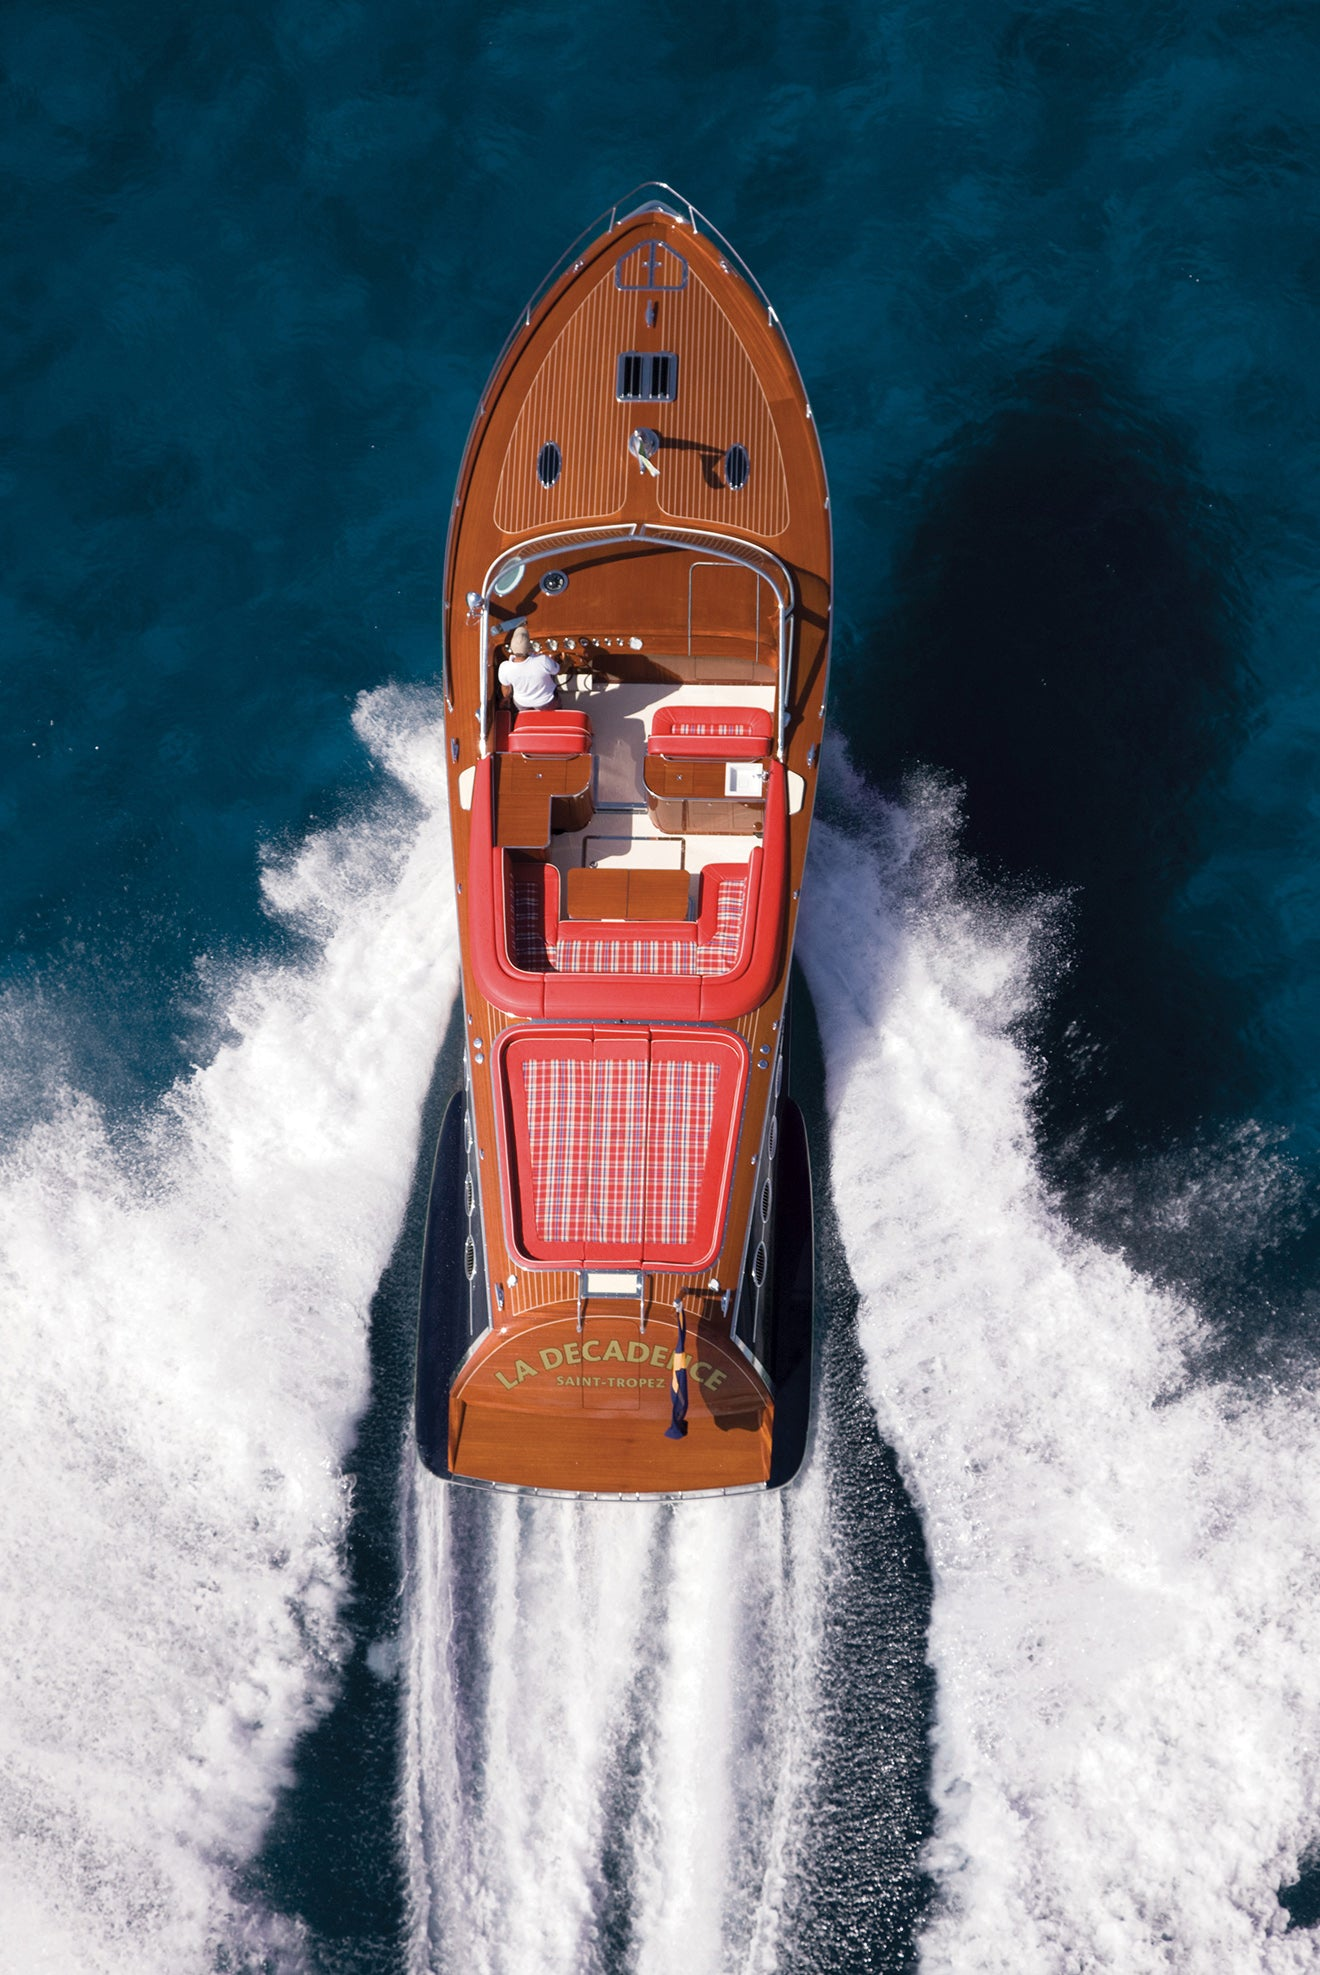 Jcraft luxury boat design classic style and glamour